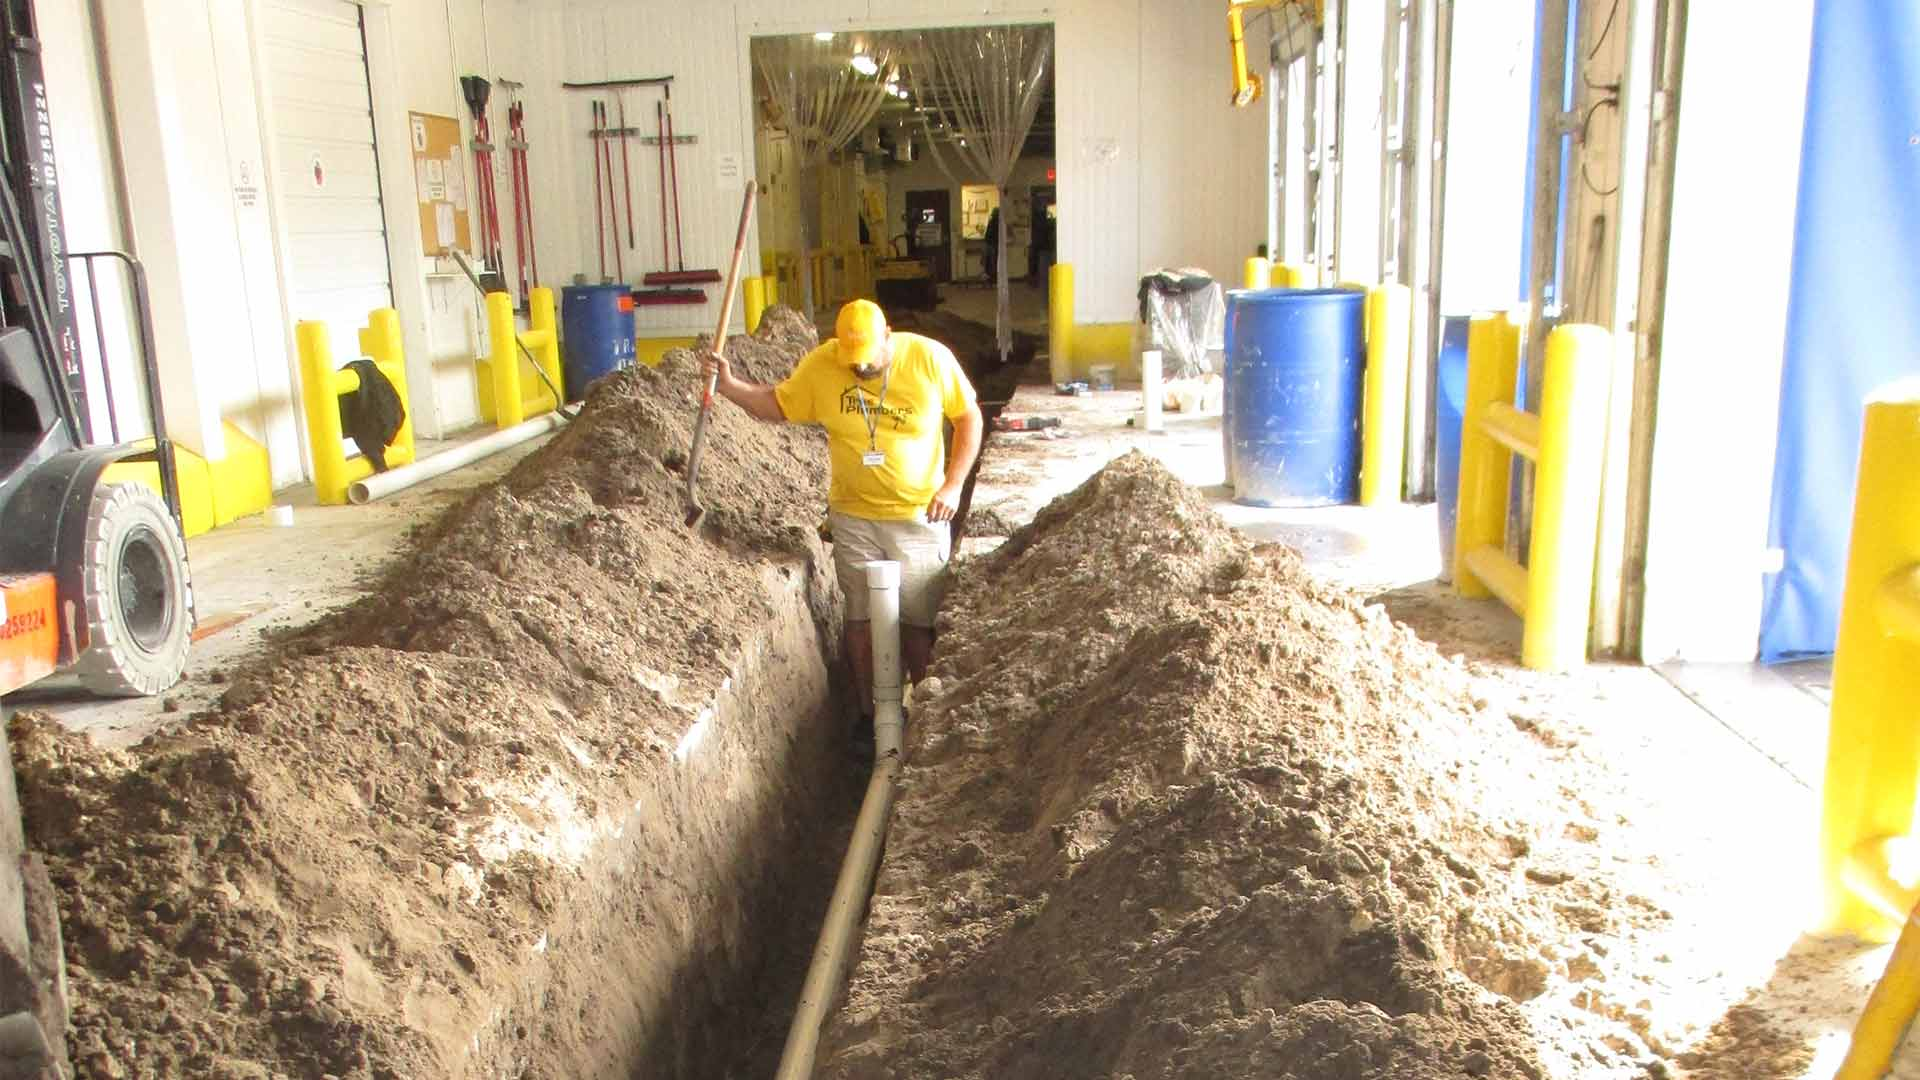 Slab leak repairs performed at a business in Plant City, FL.